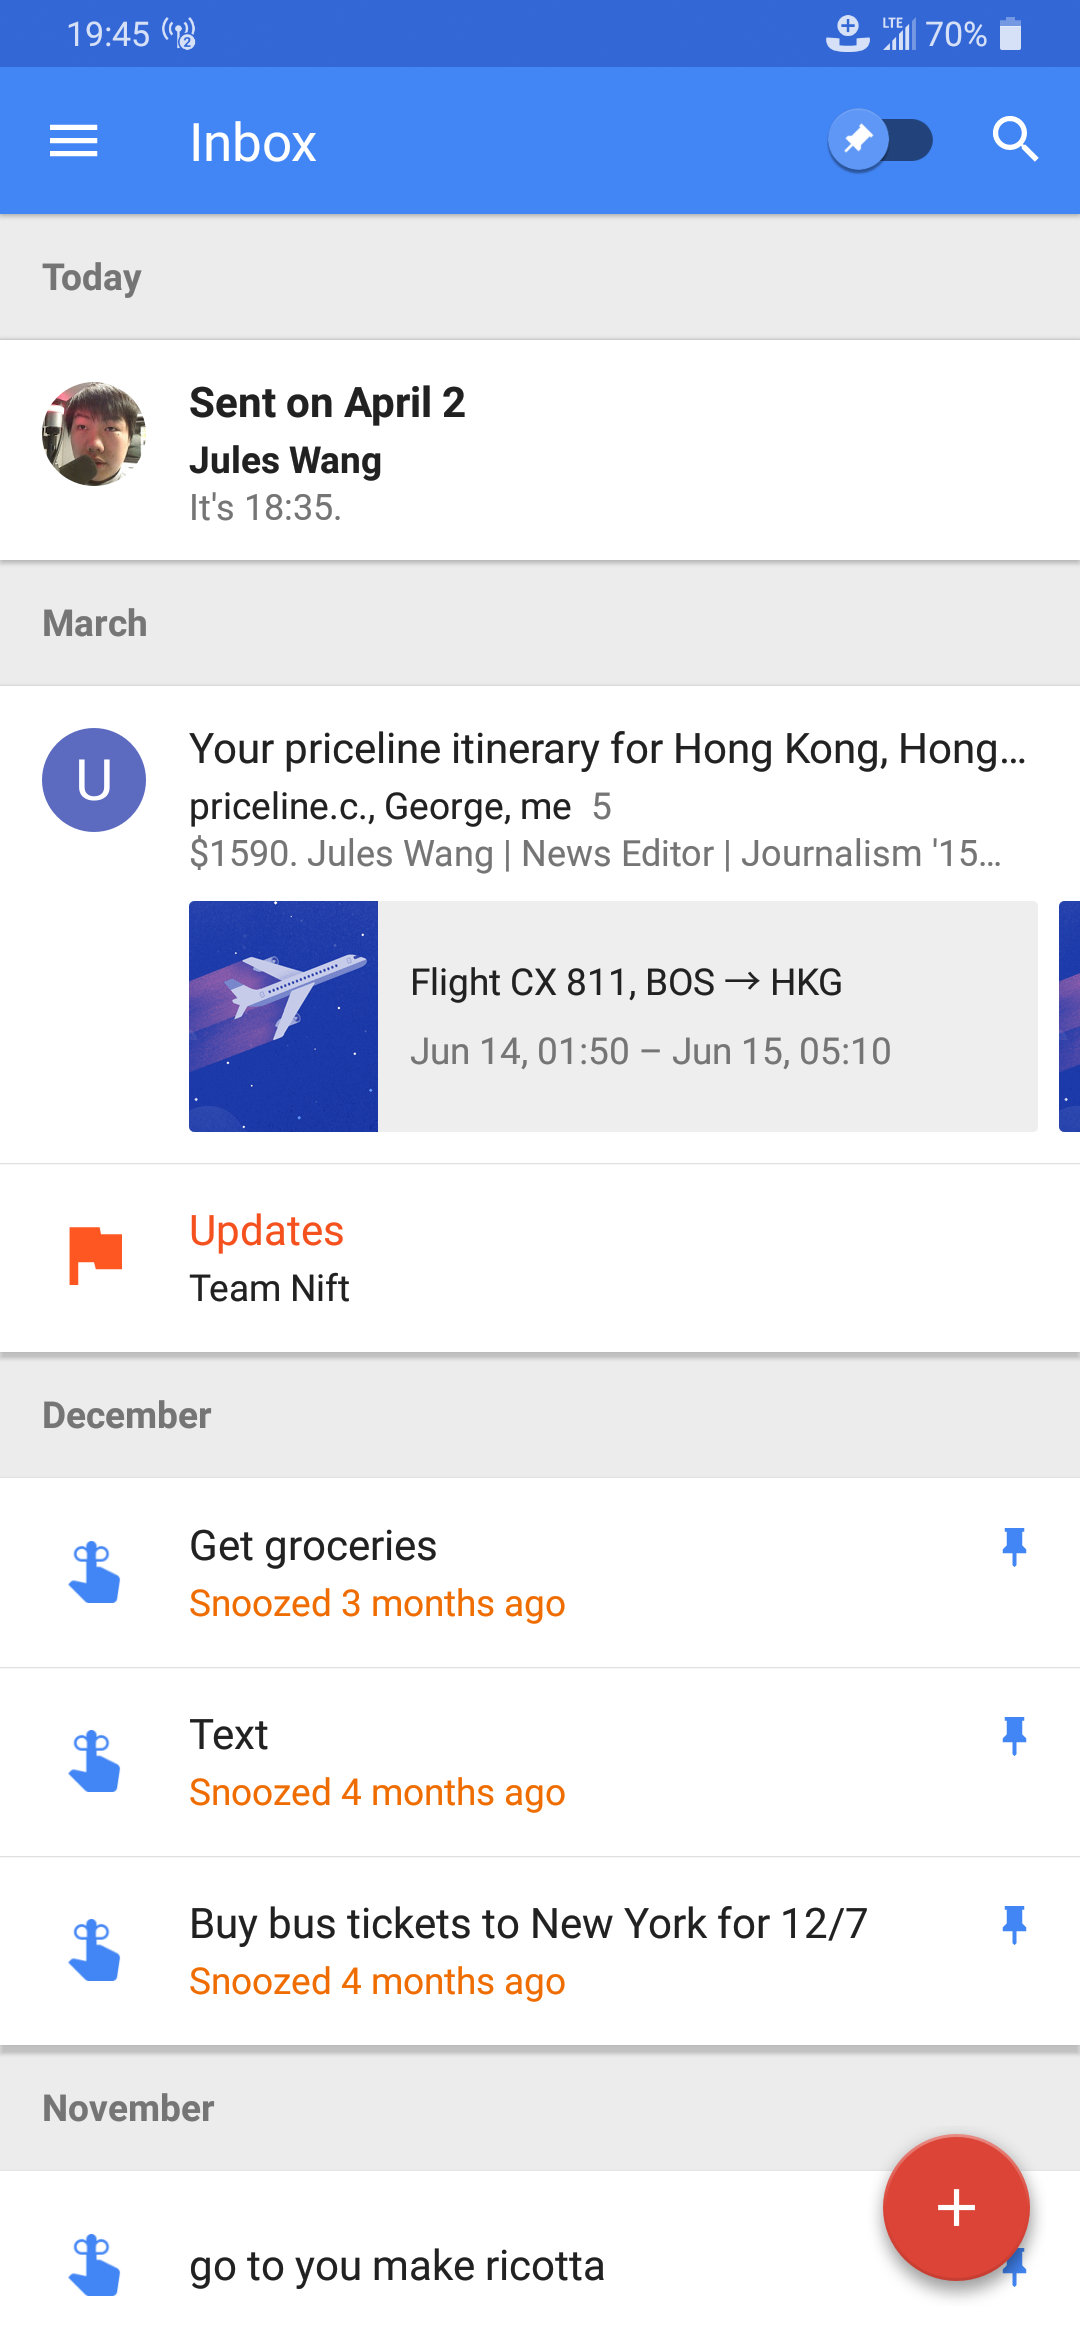 Update: Dead, for real] Inbox by Gmail may be dead, but you